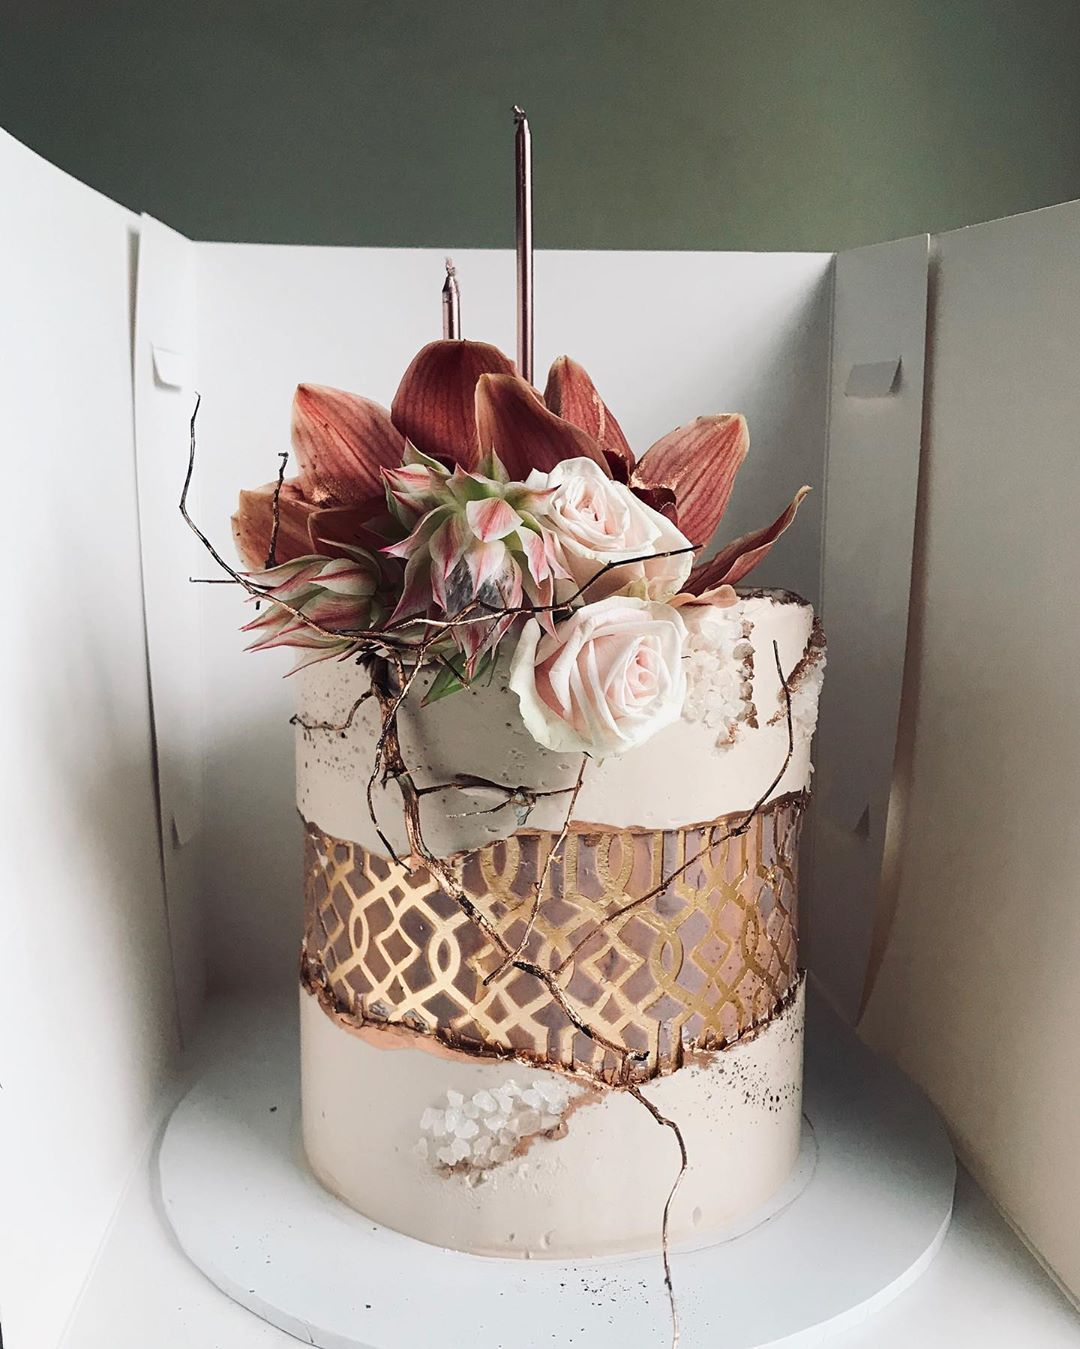 an exquisite blush wedding cake with a delicate patterned fault line, with cracks, mauve and pink blooms and a copper twig